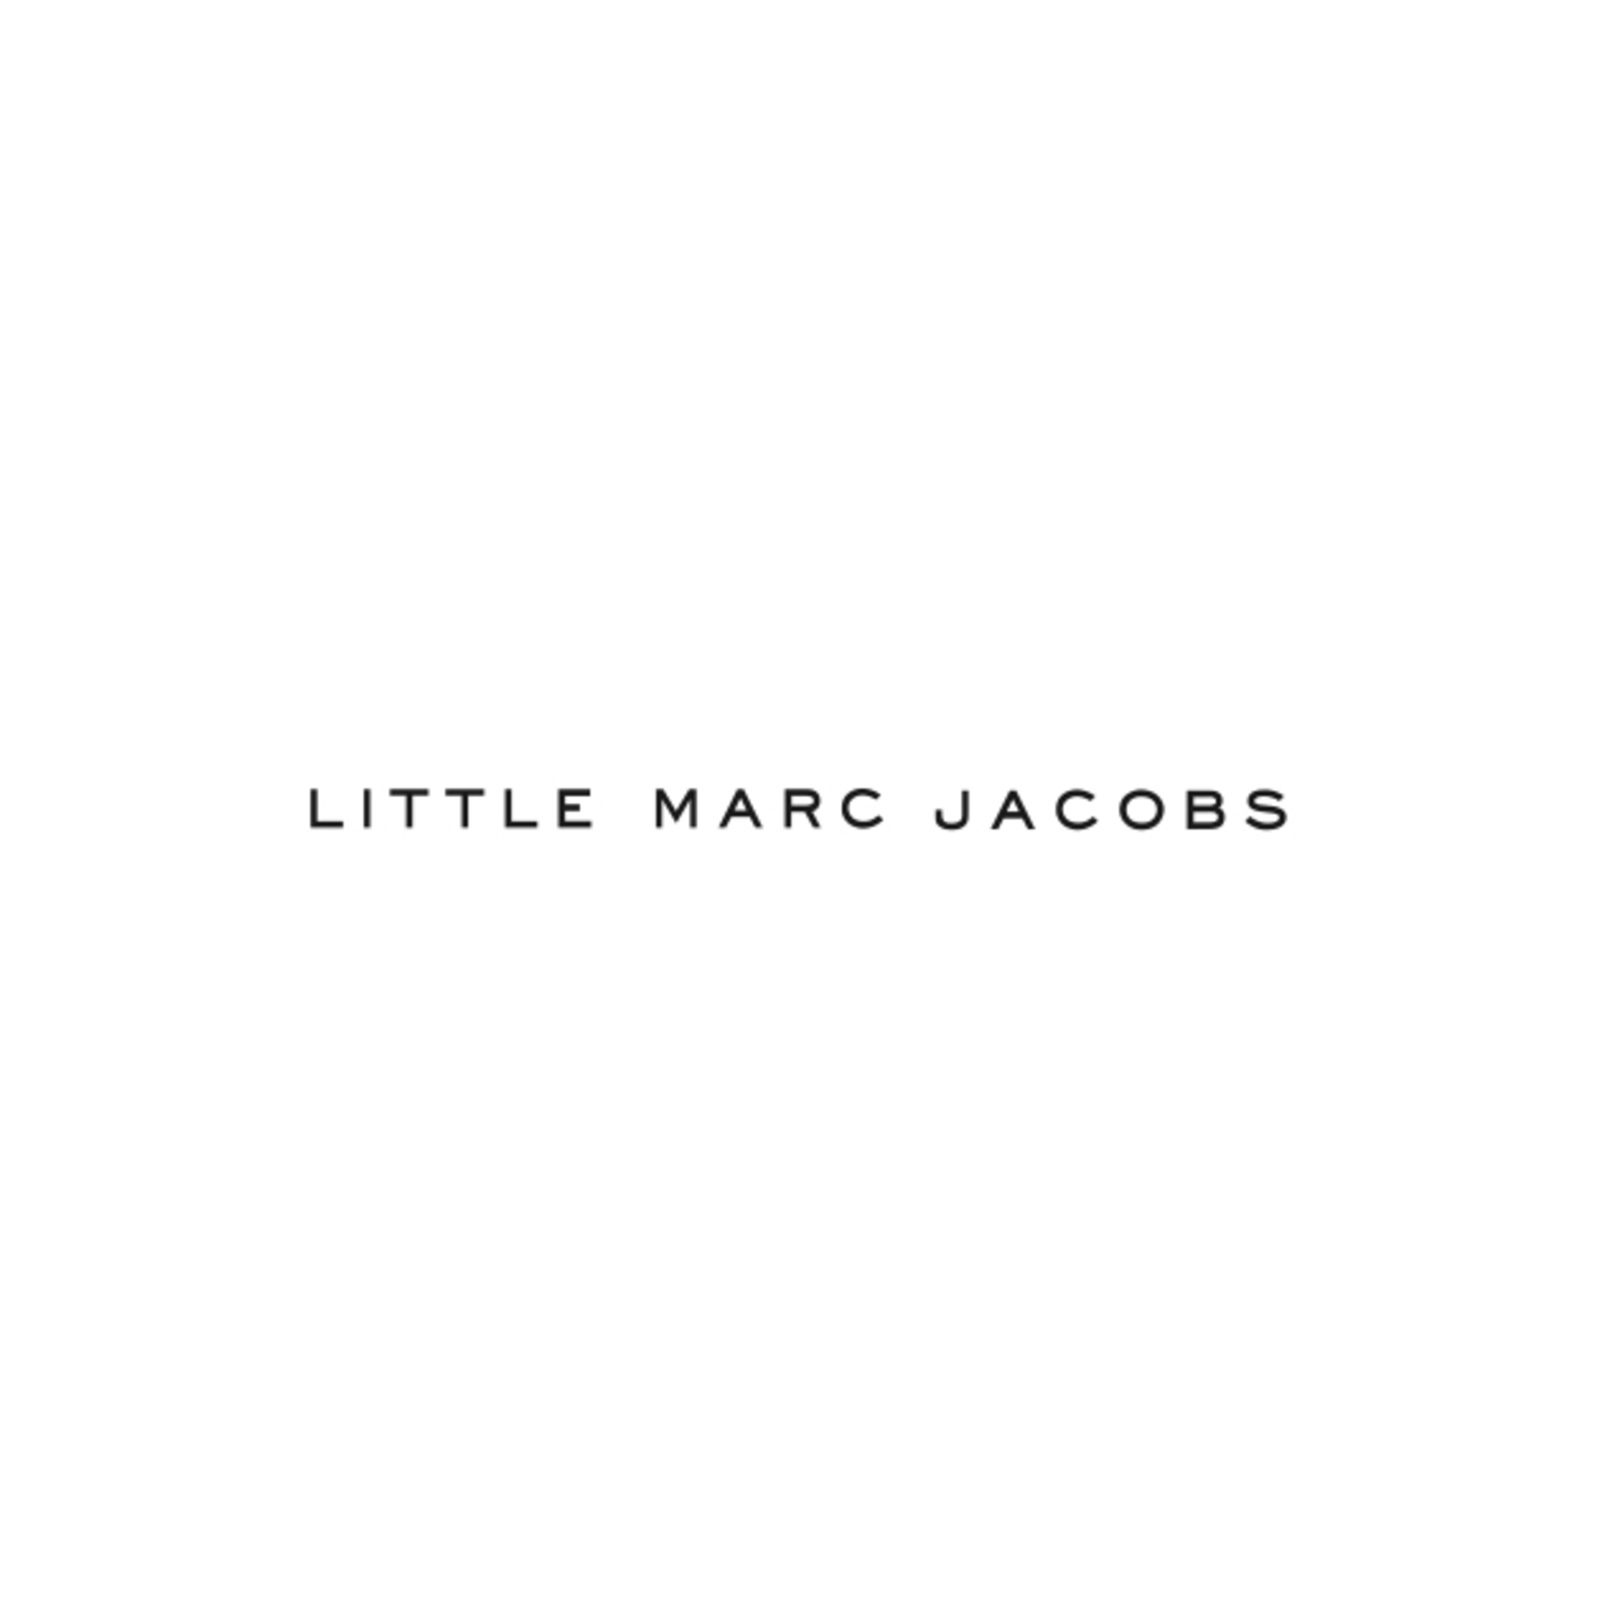 LITTLE MARC JACOBS (Bild 1)